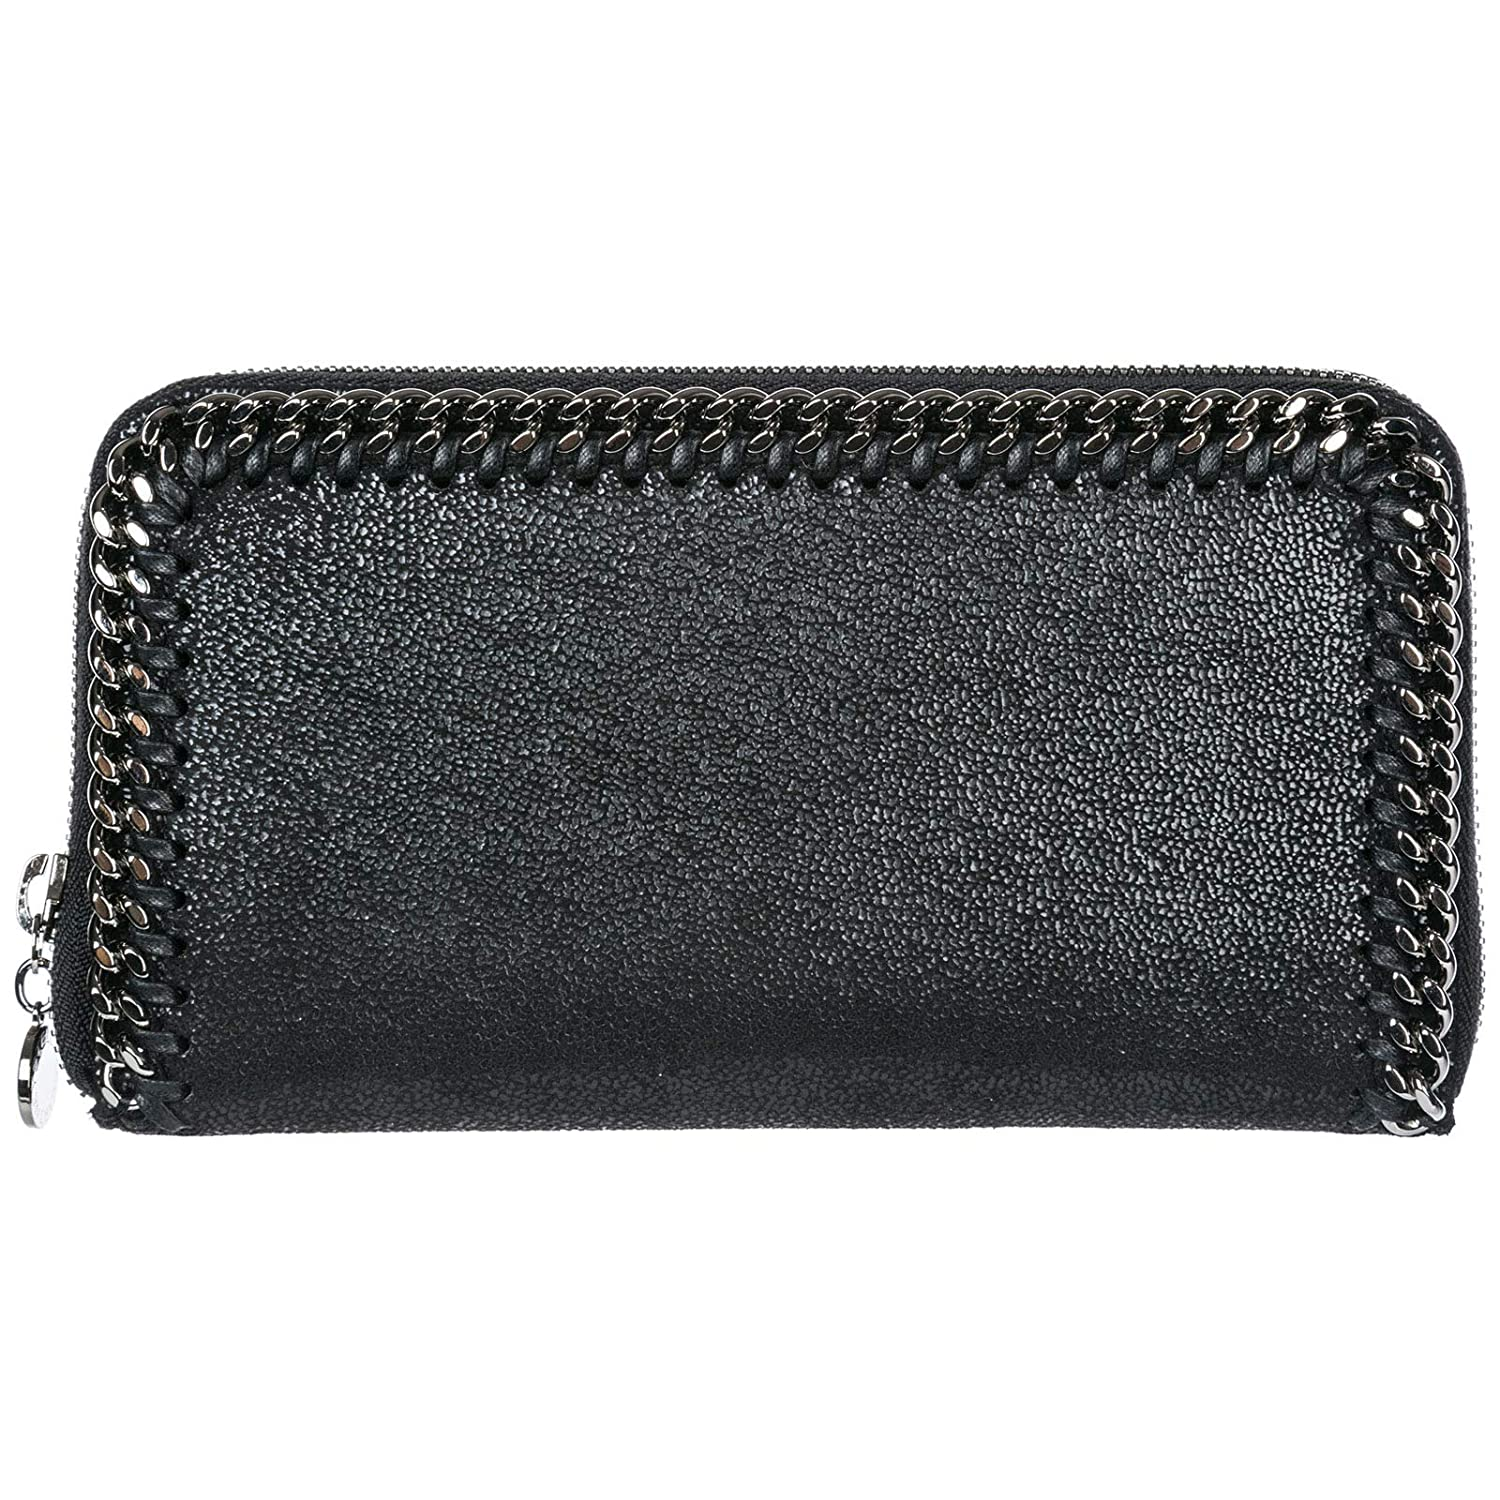 Stella McCartney Continental Falabella billetera mujer nero